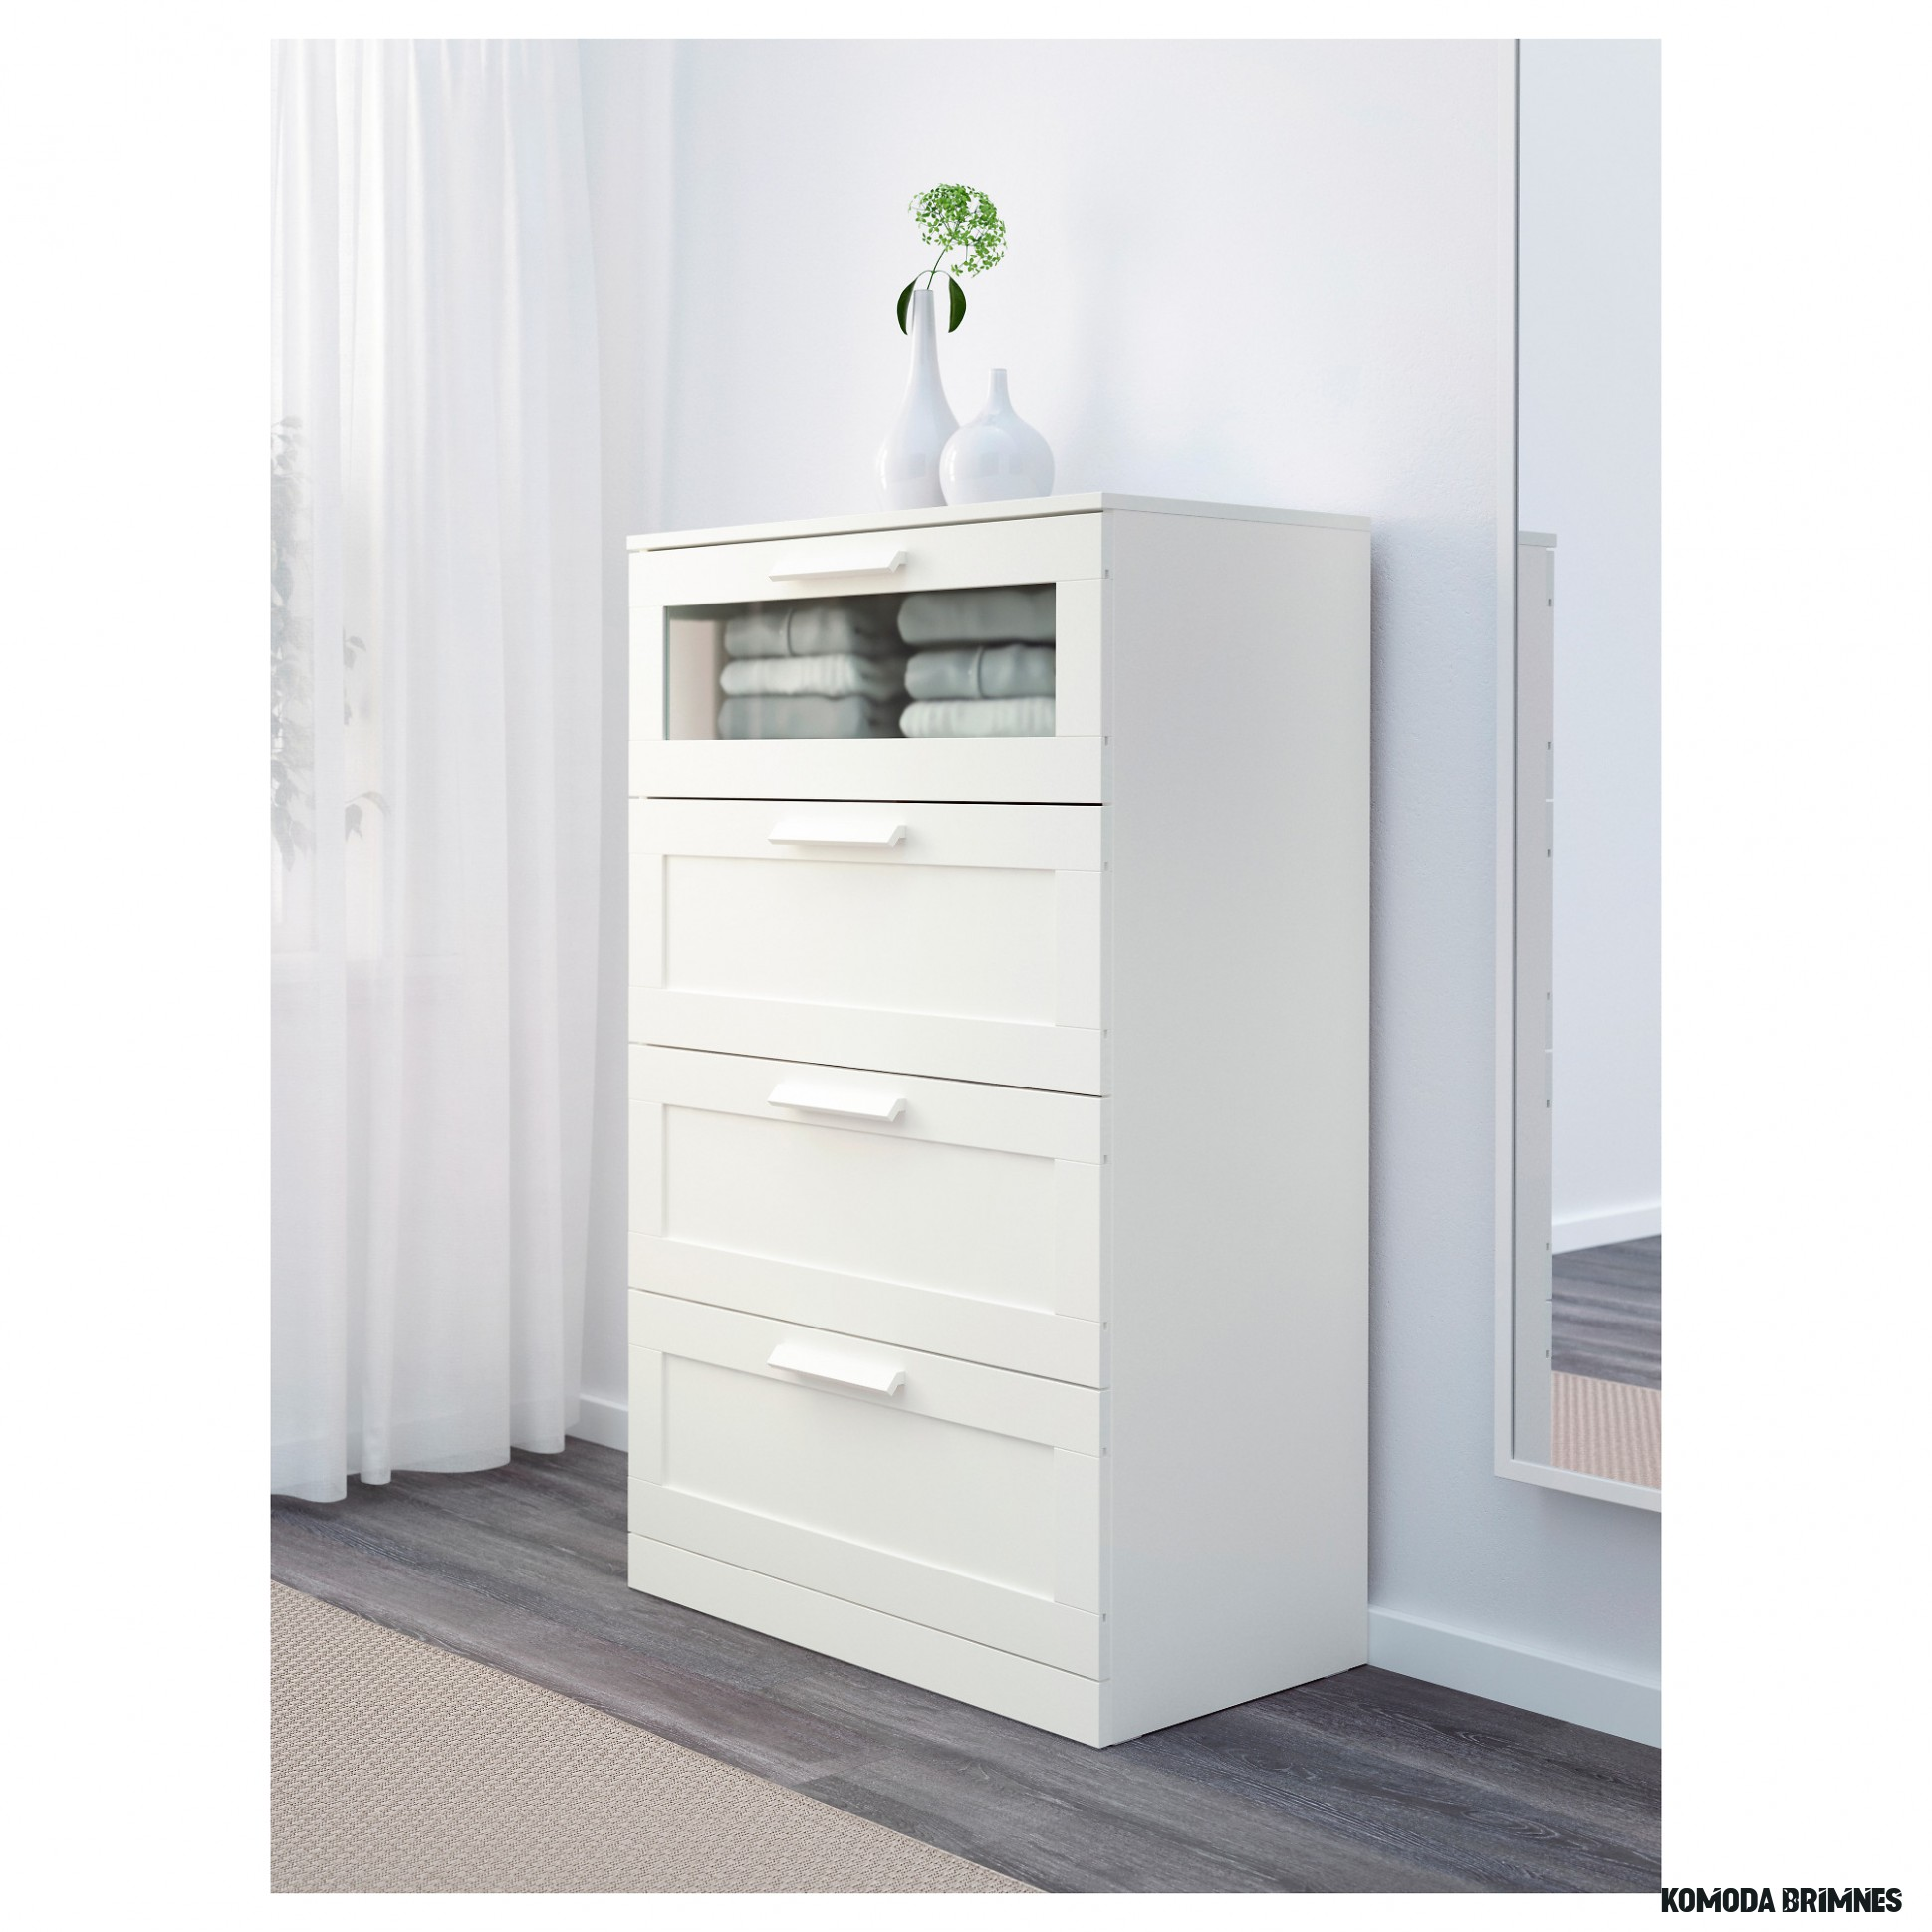 IKEA Latvia - Shop for Furniture, Lighting, Home Accessories & More